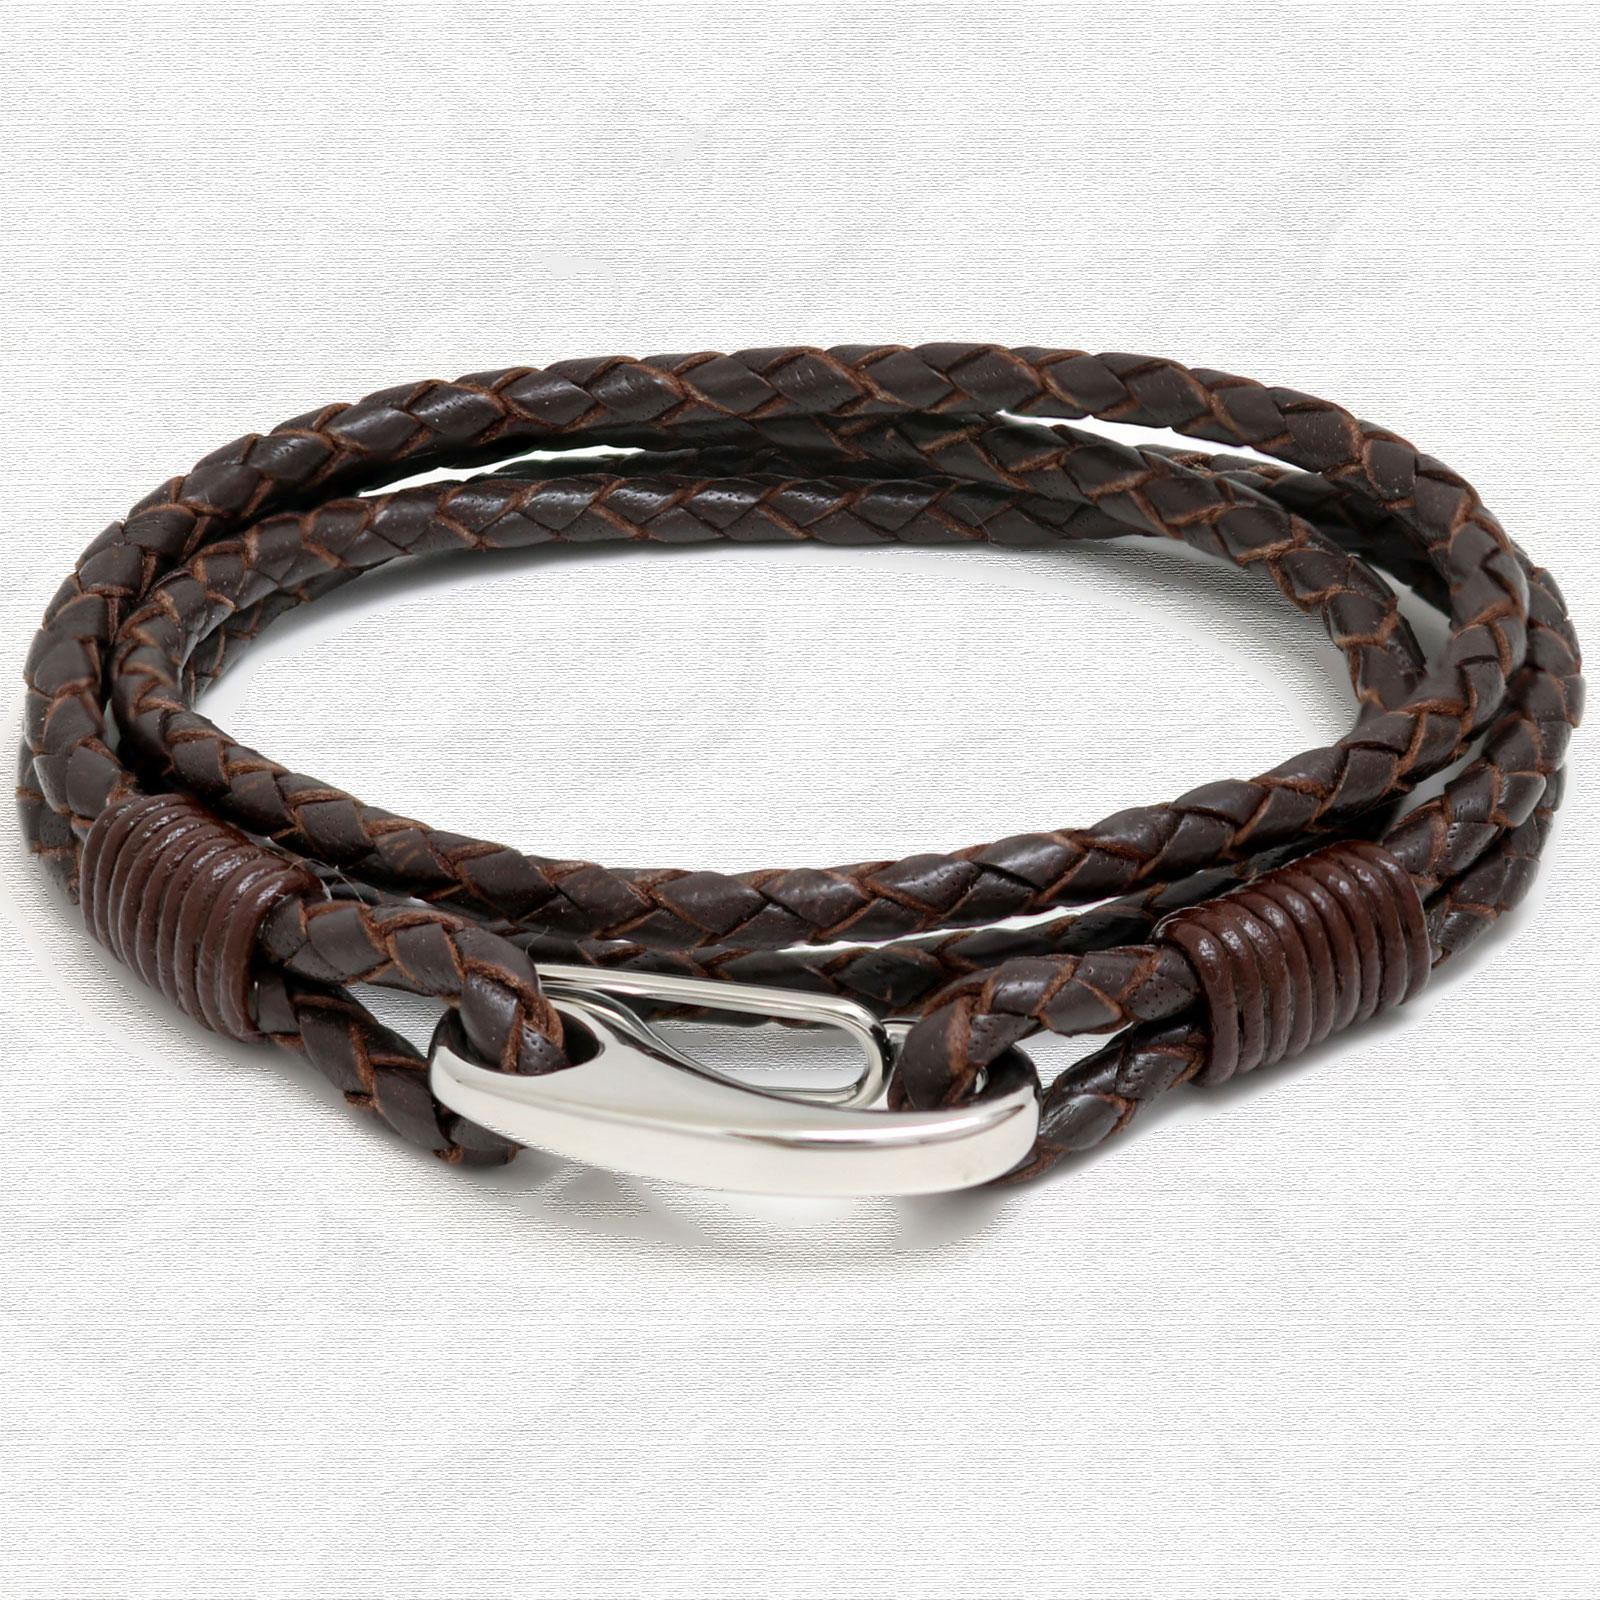 Brown Four Strap Bolo Leather Bracelet with Steel Lobster Clasp